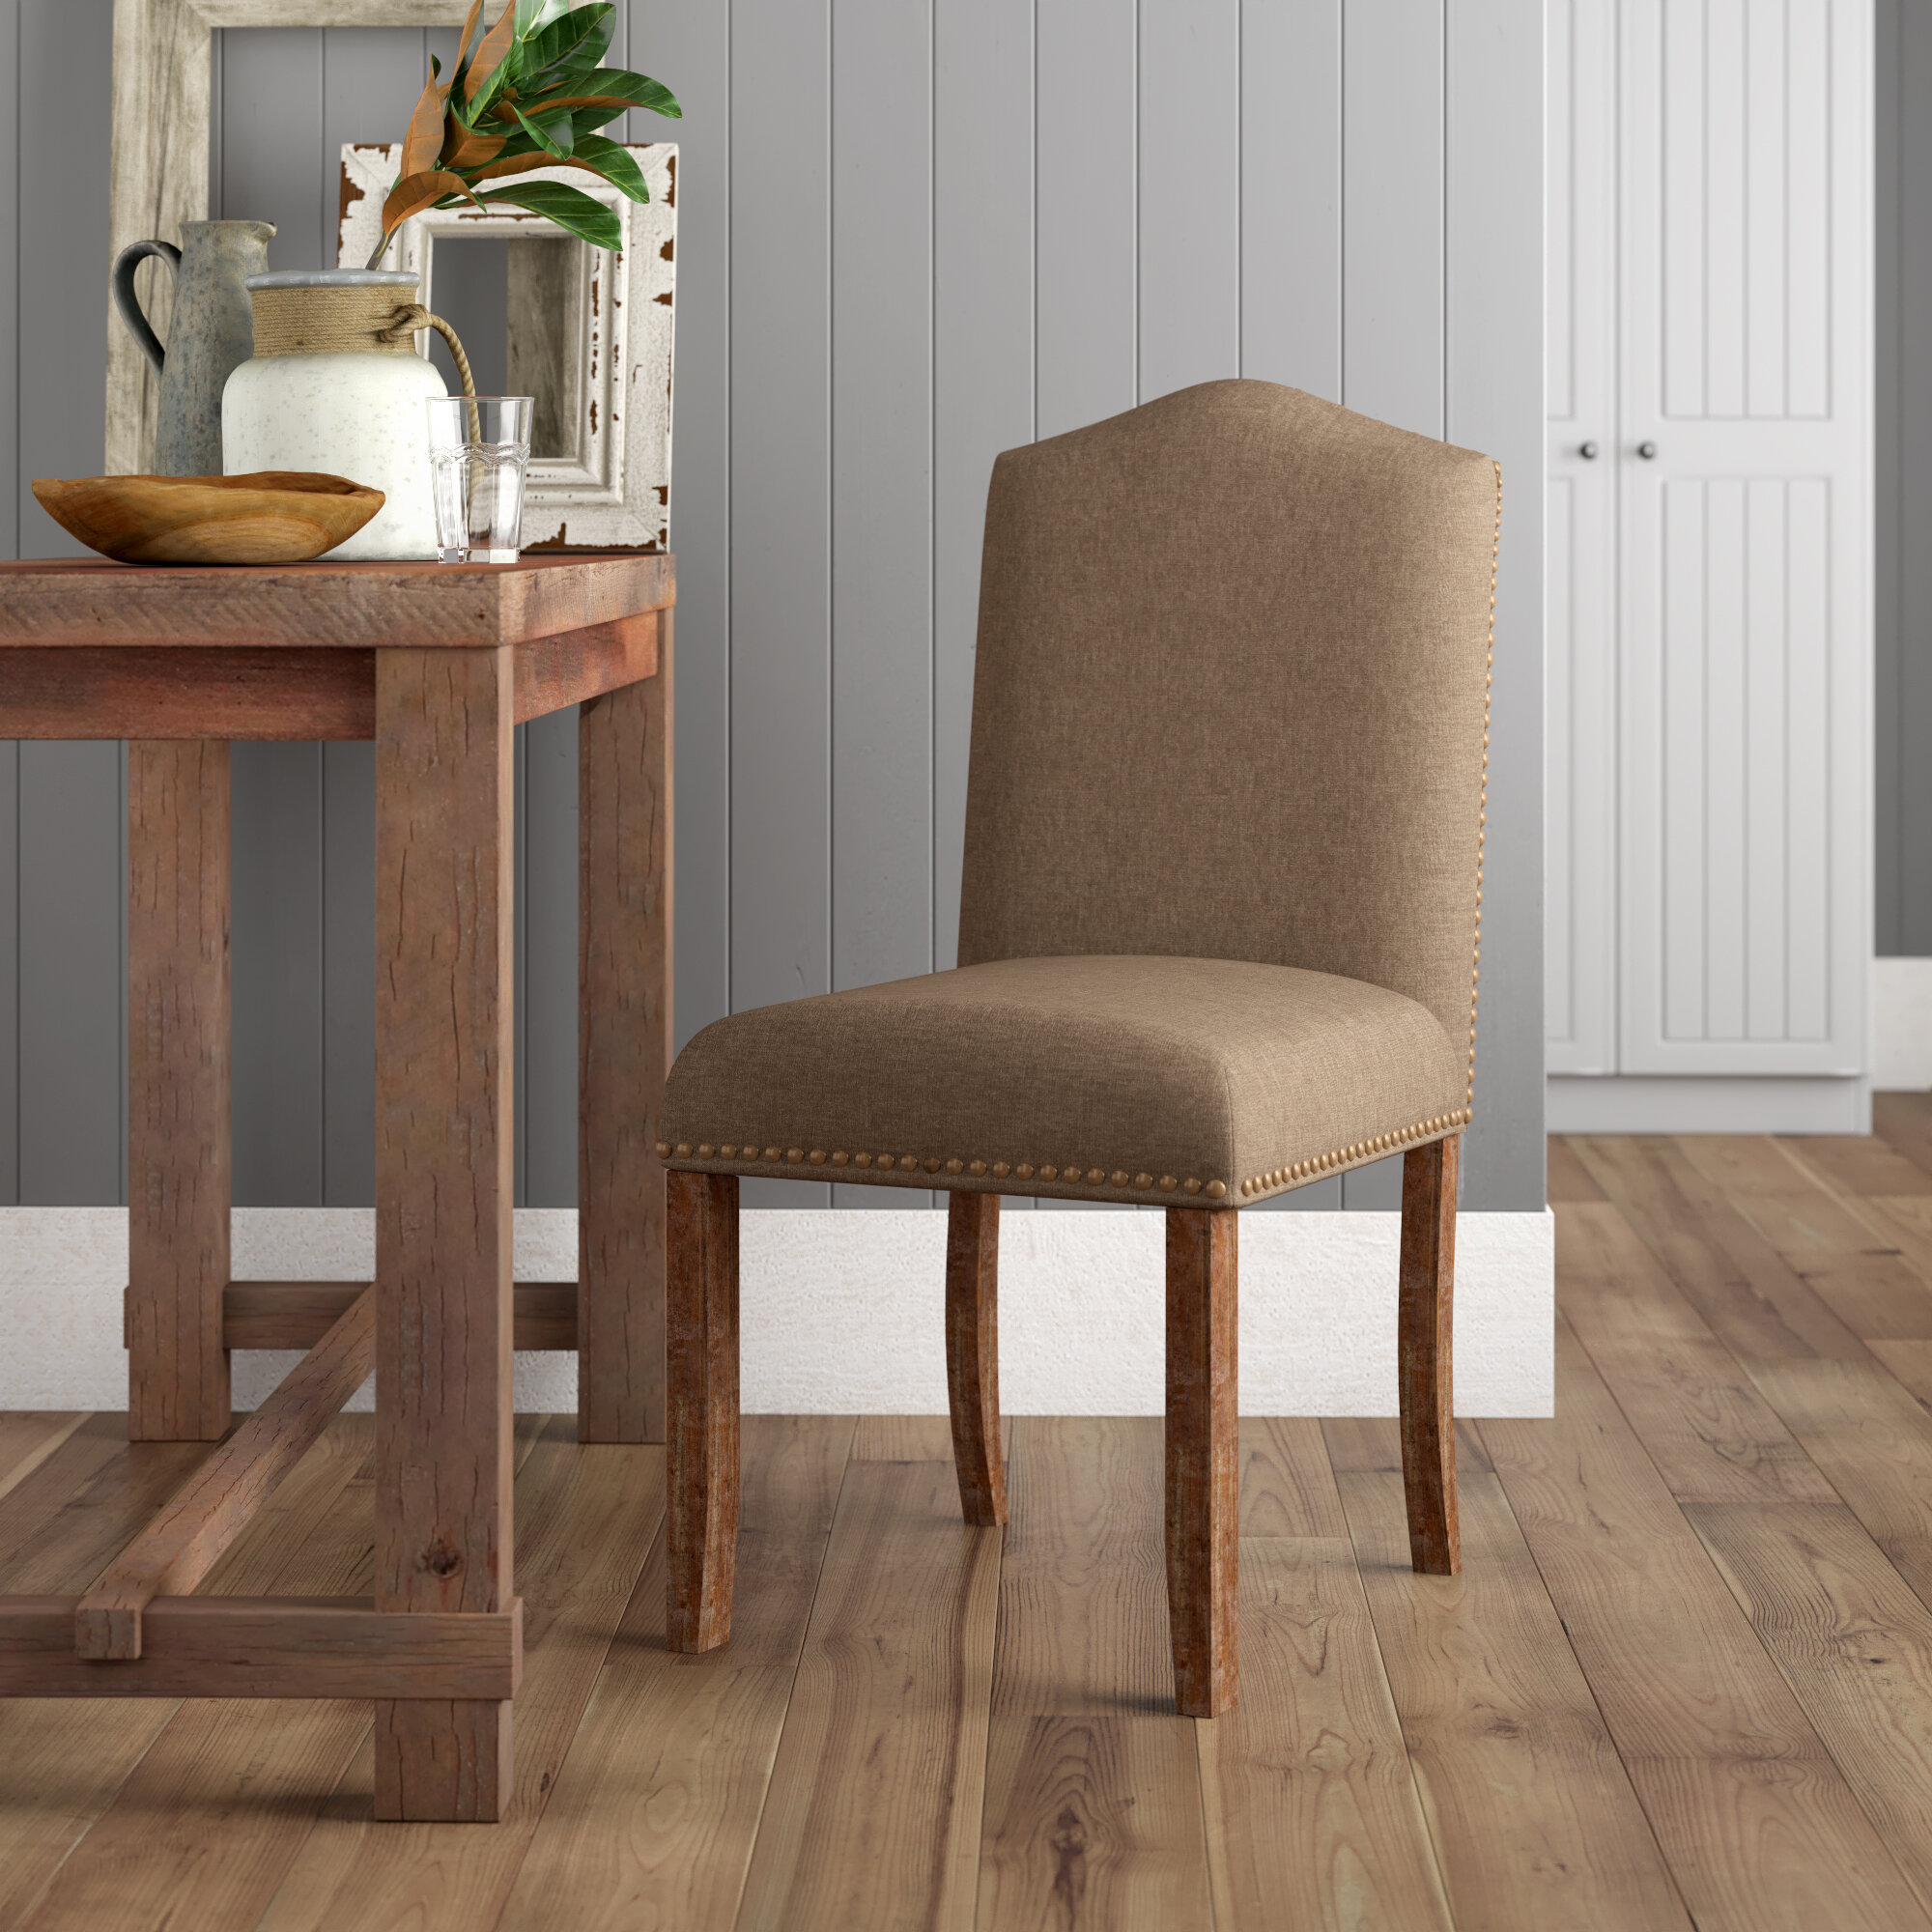 Super Knutsford Upholstered Dining Chair Gmtry Best Dining Table And Chair Ideas Images Gmtryco